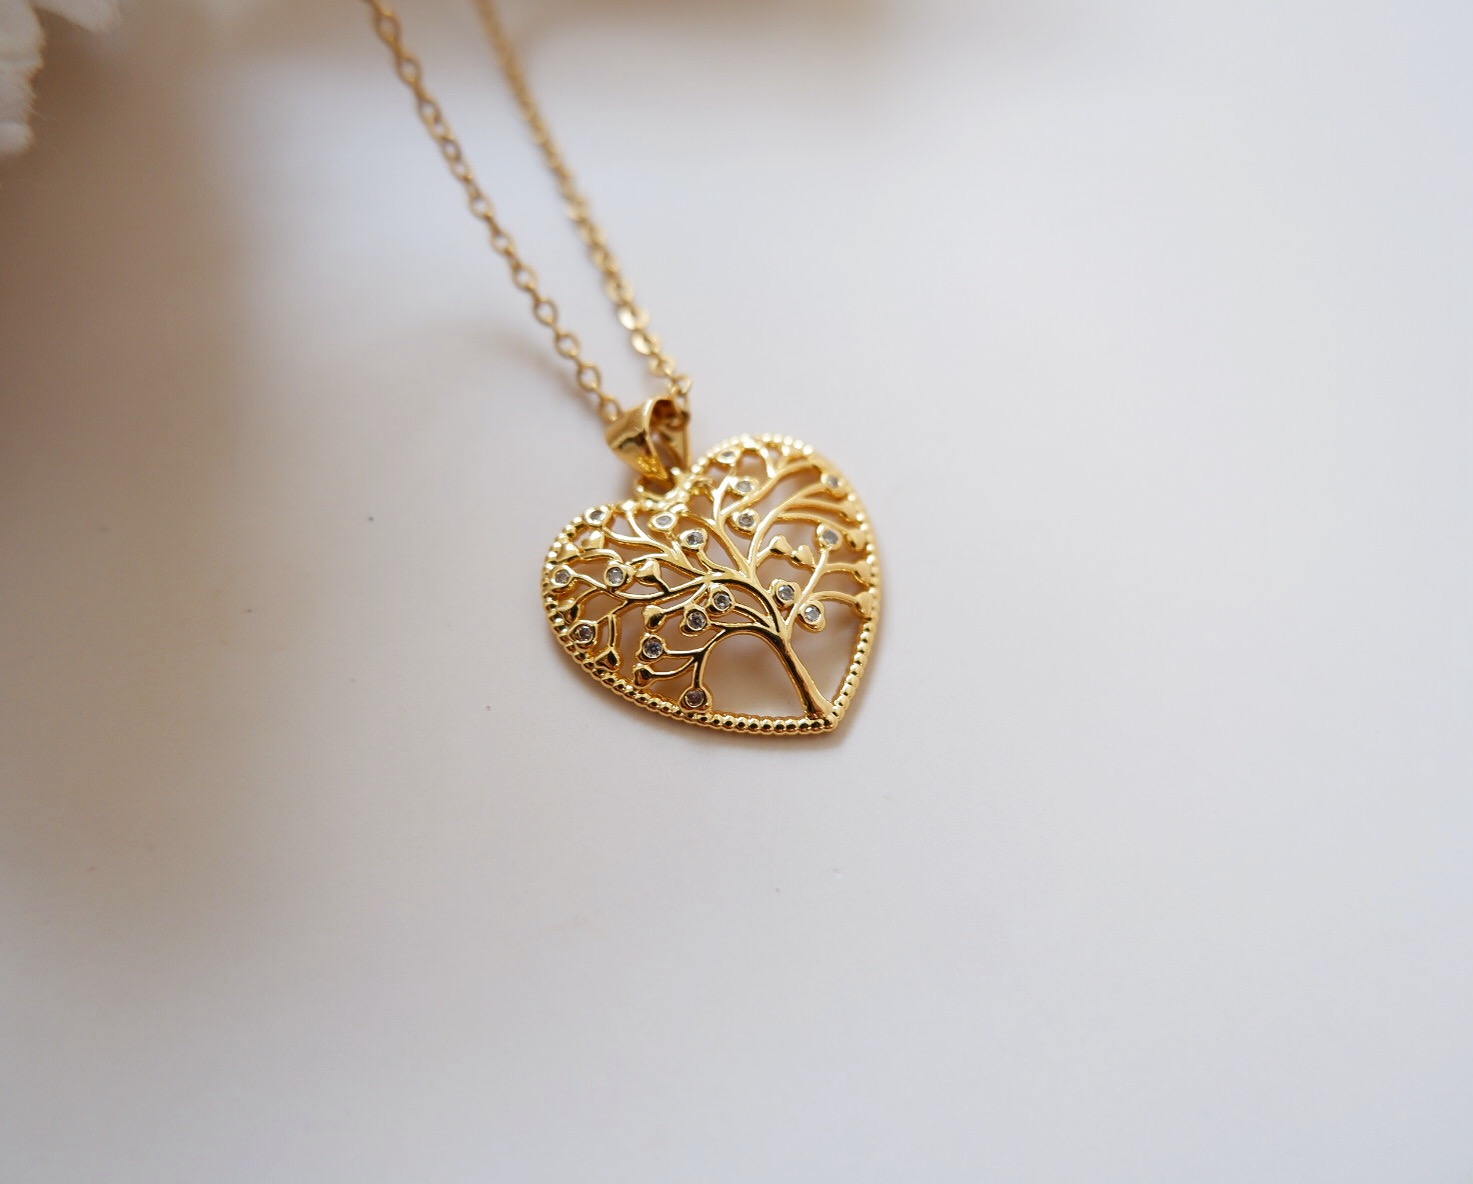 Growing-Love-Necklace-1.jpeg